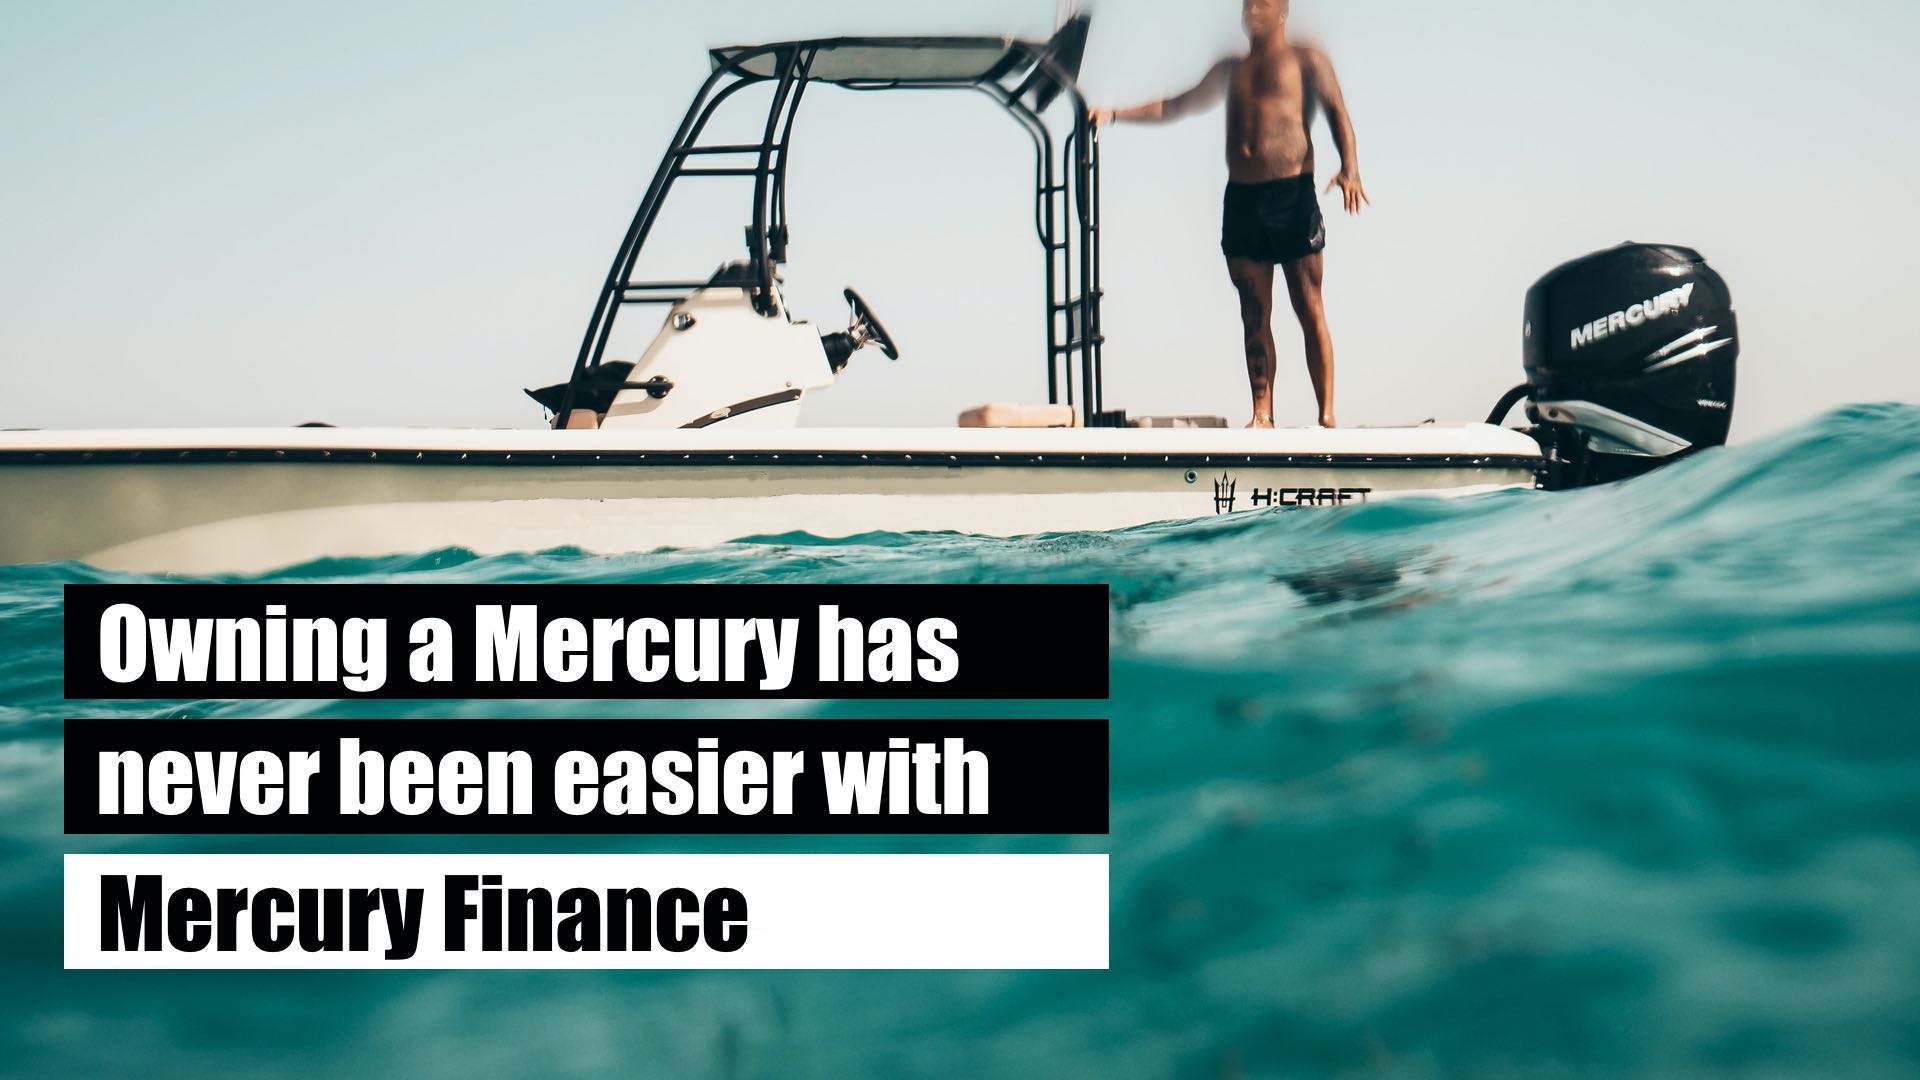 Mercury Finance: Helping Your Own Your New Boat Sooner